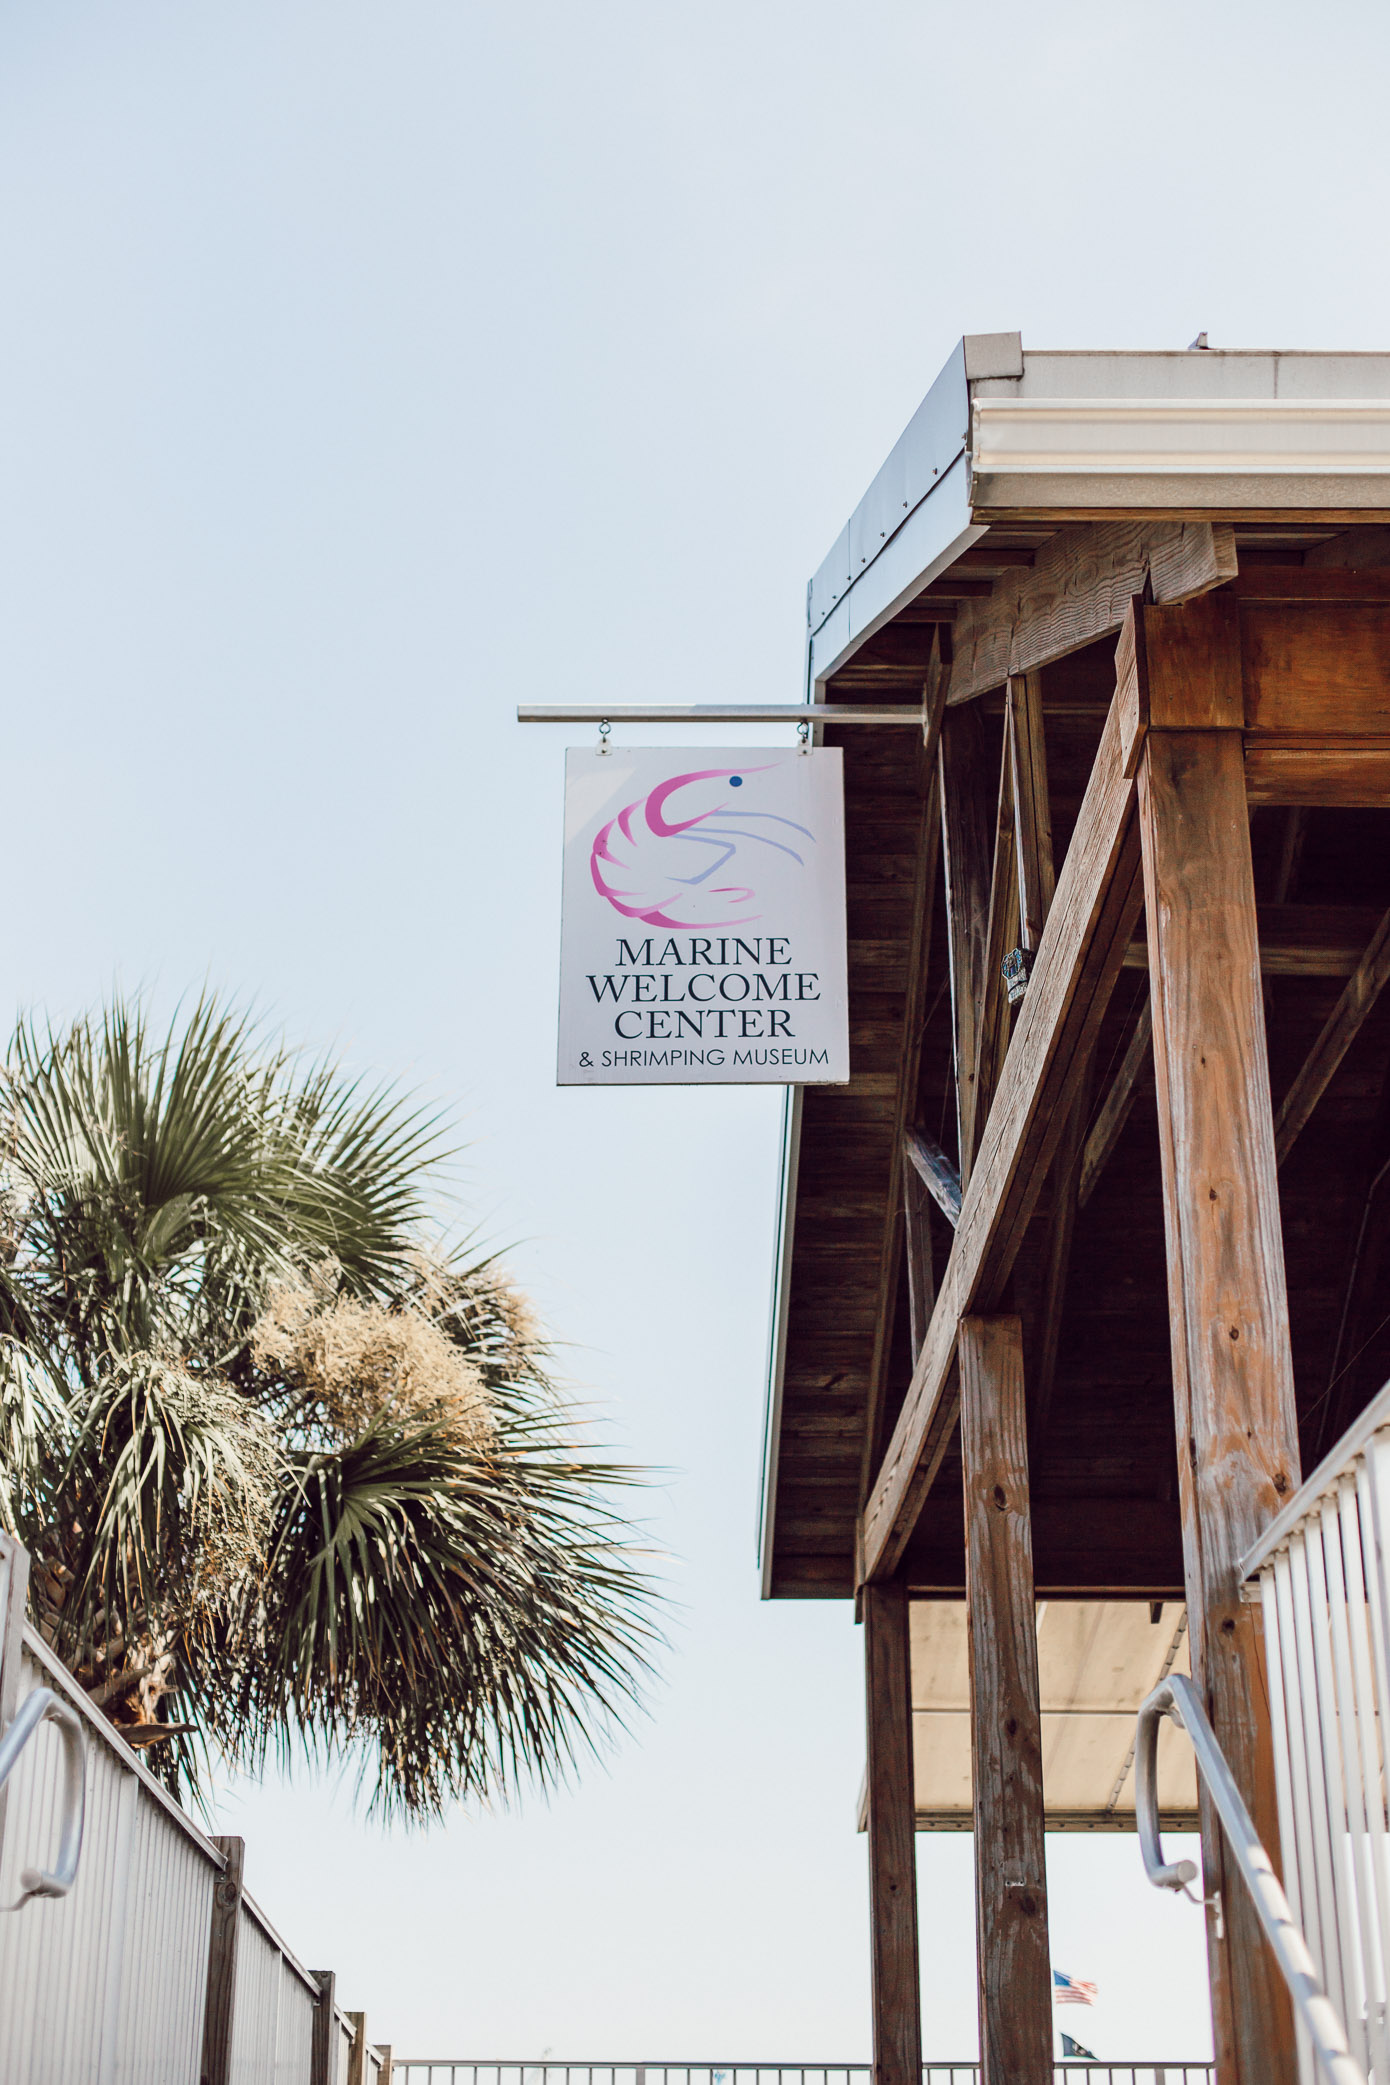 Things to do in Amelia Island | Shrimp Museum | Amelia Island Lighthouse | Amelia Island Travel Guide | Louella Reese